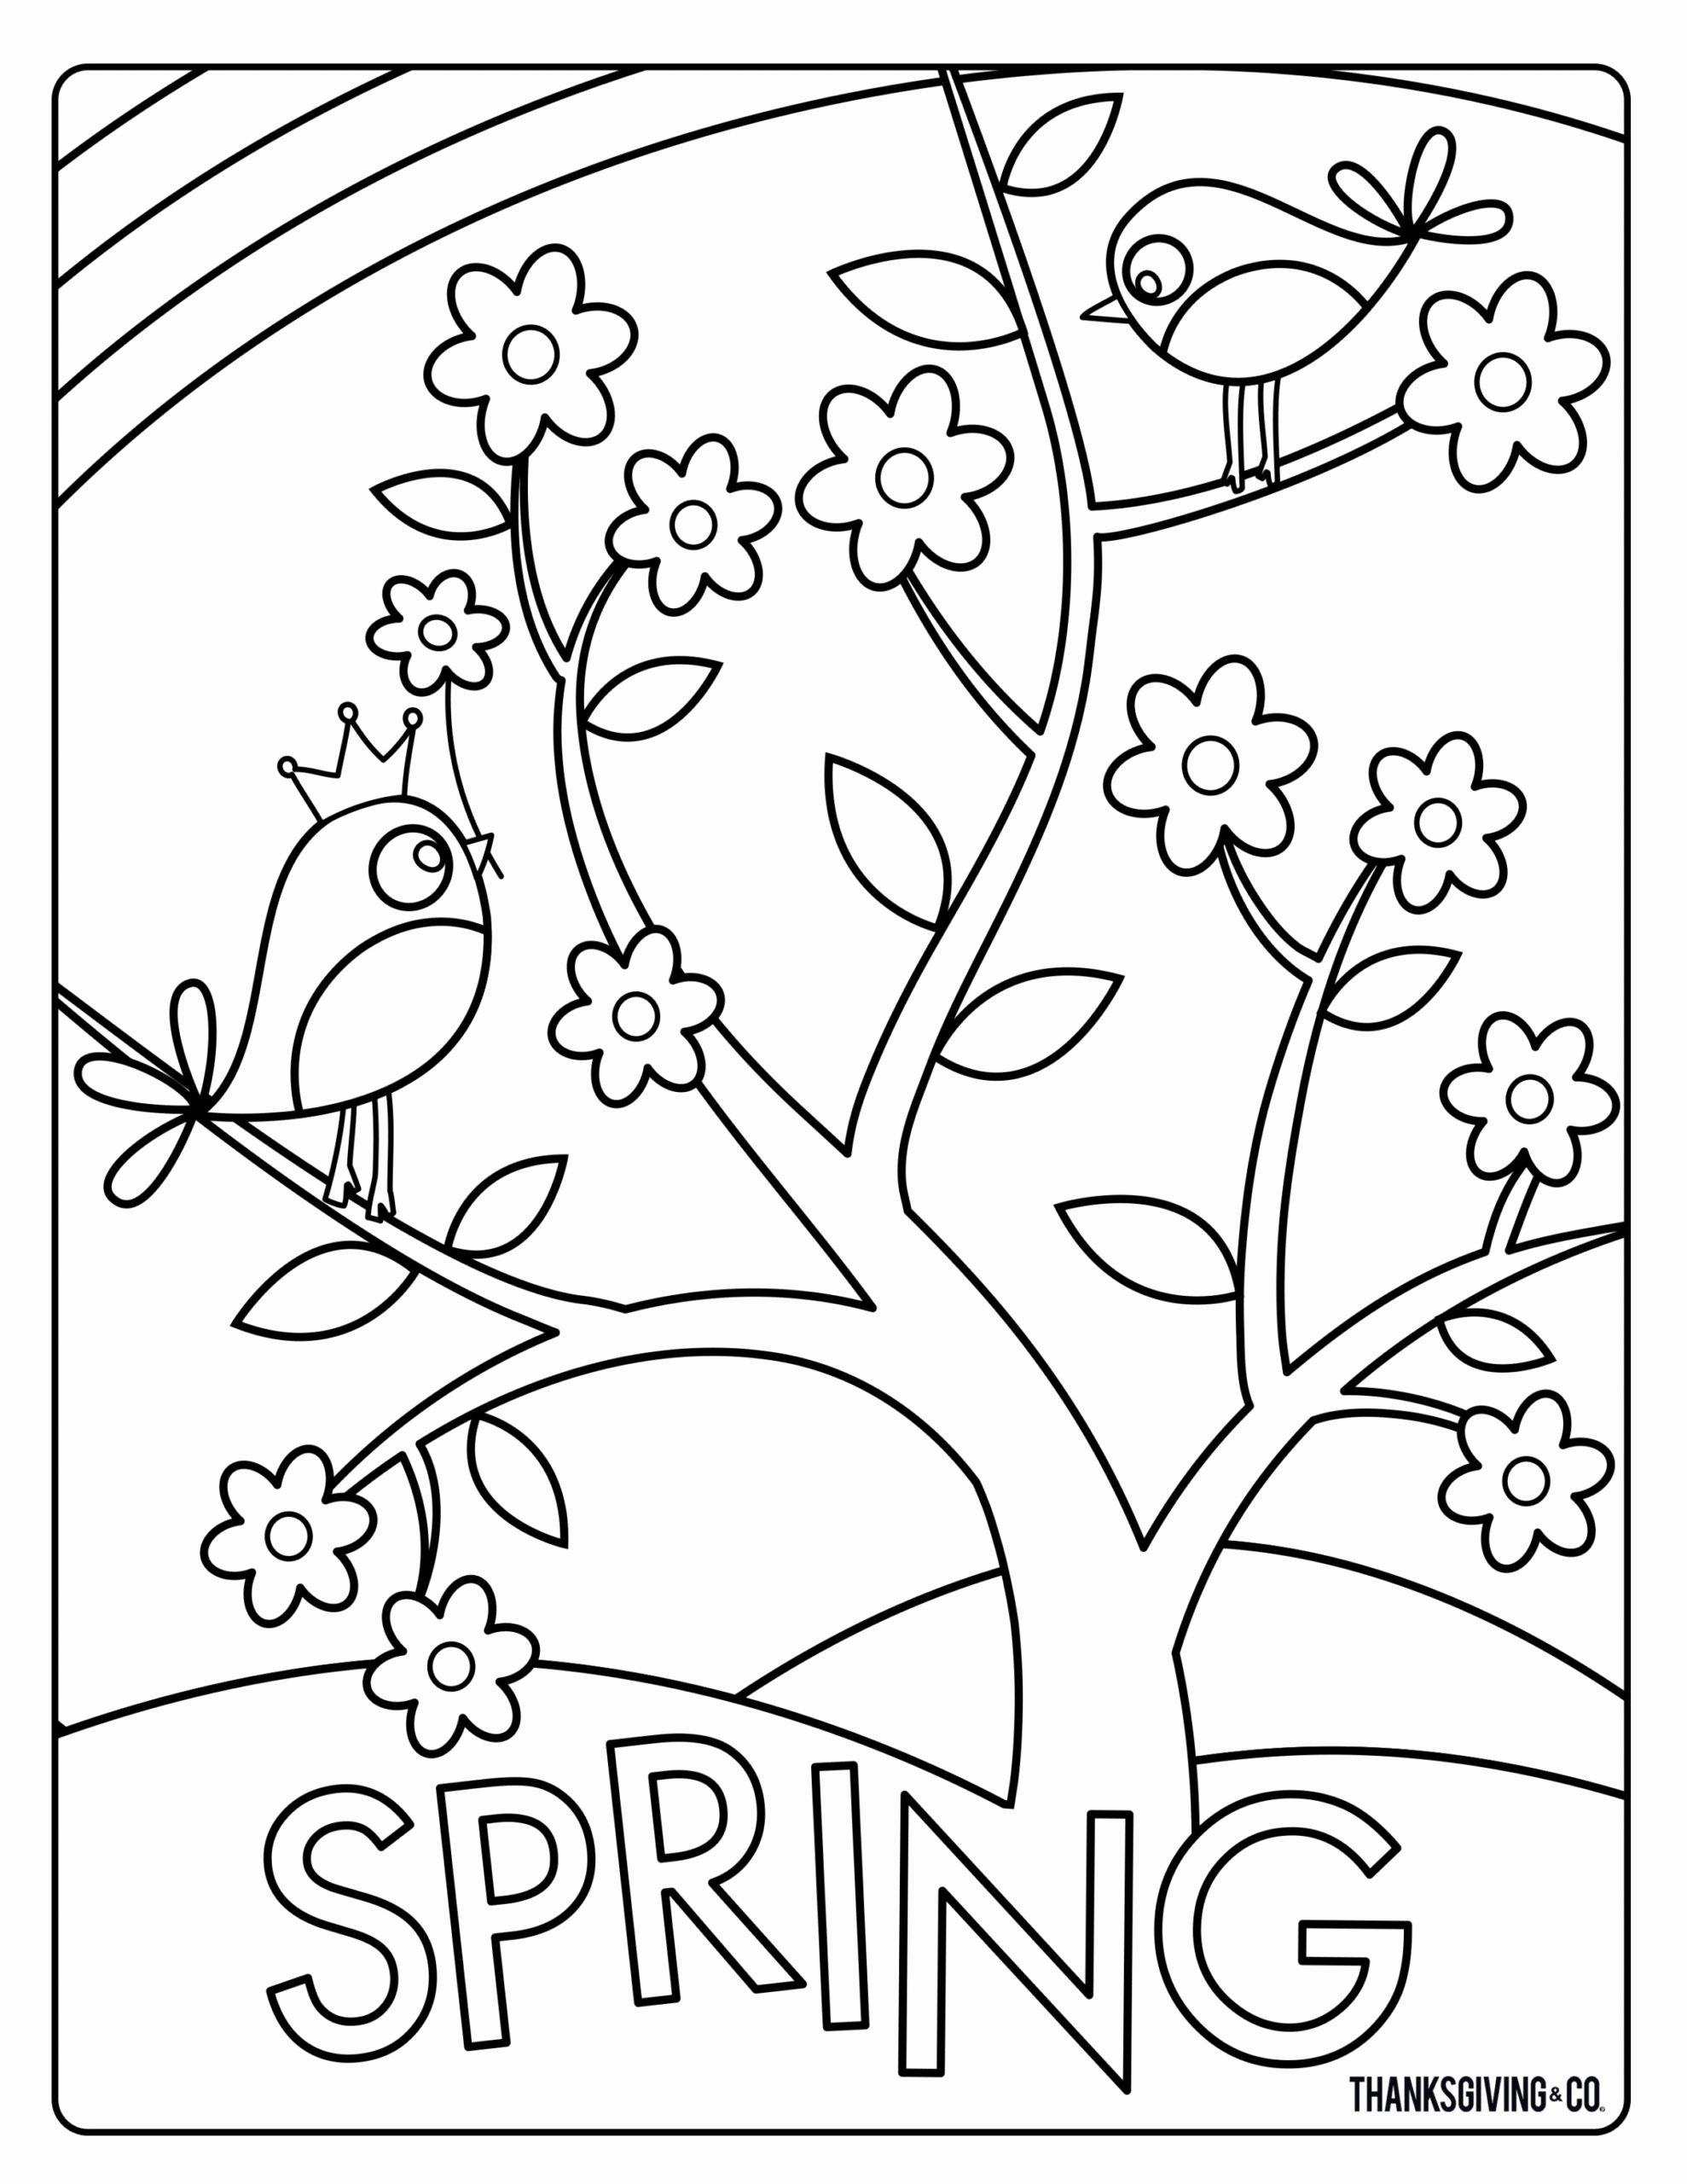 Worksheets for Preschoolers Spring Printable Spring Coloring Sheets for toddlers Coloringheets Happy Kids